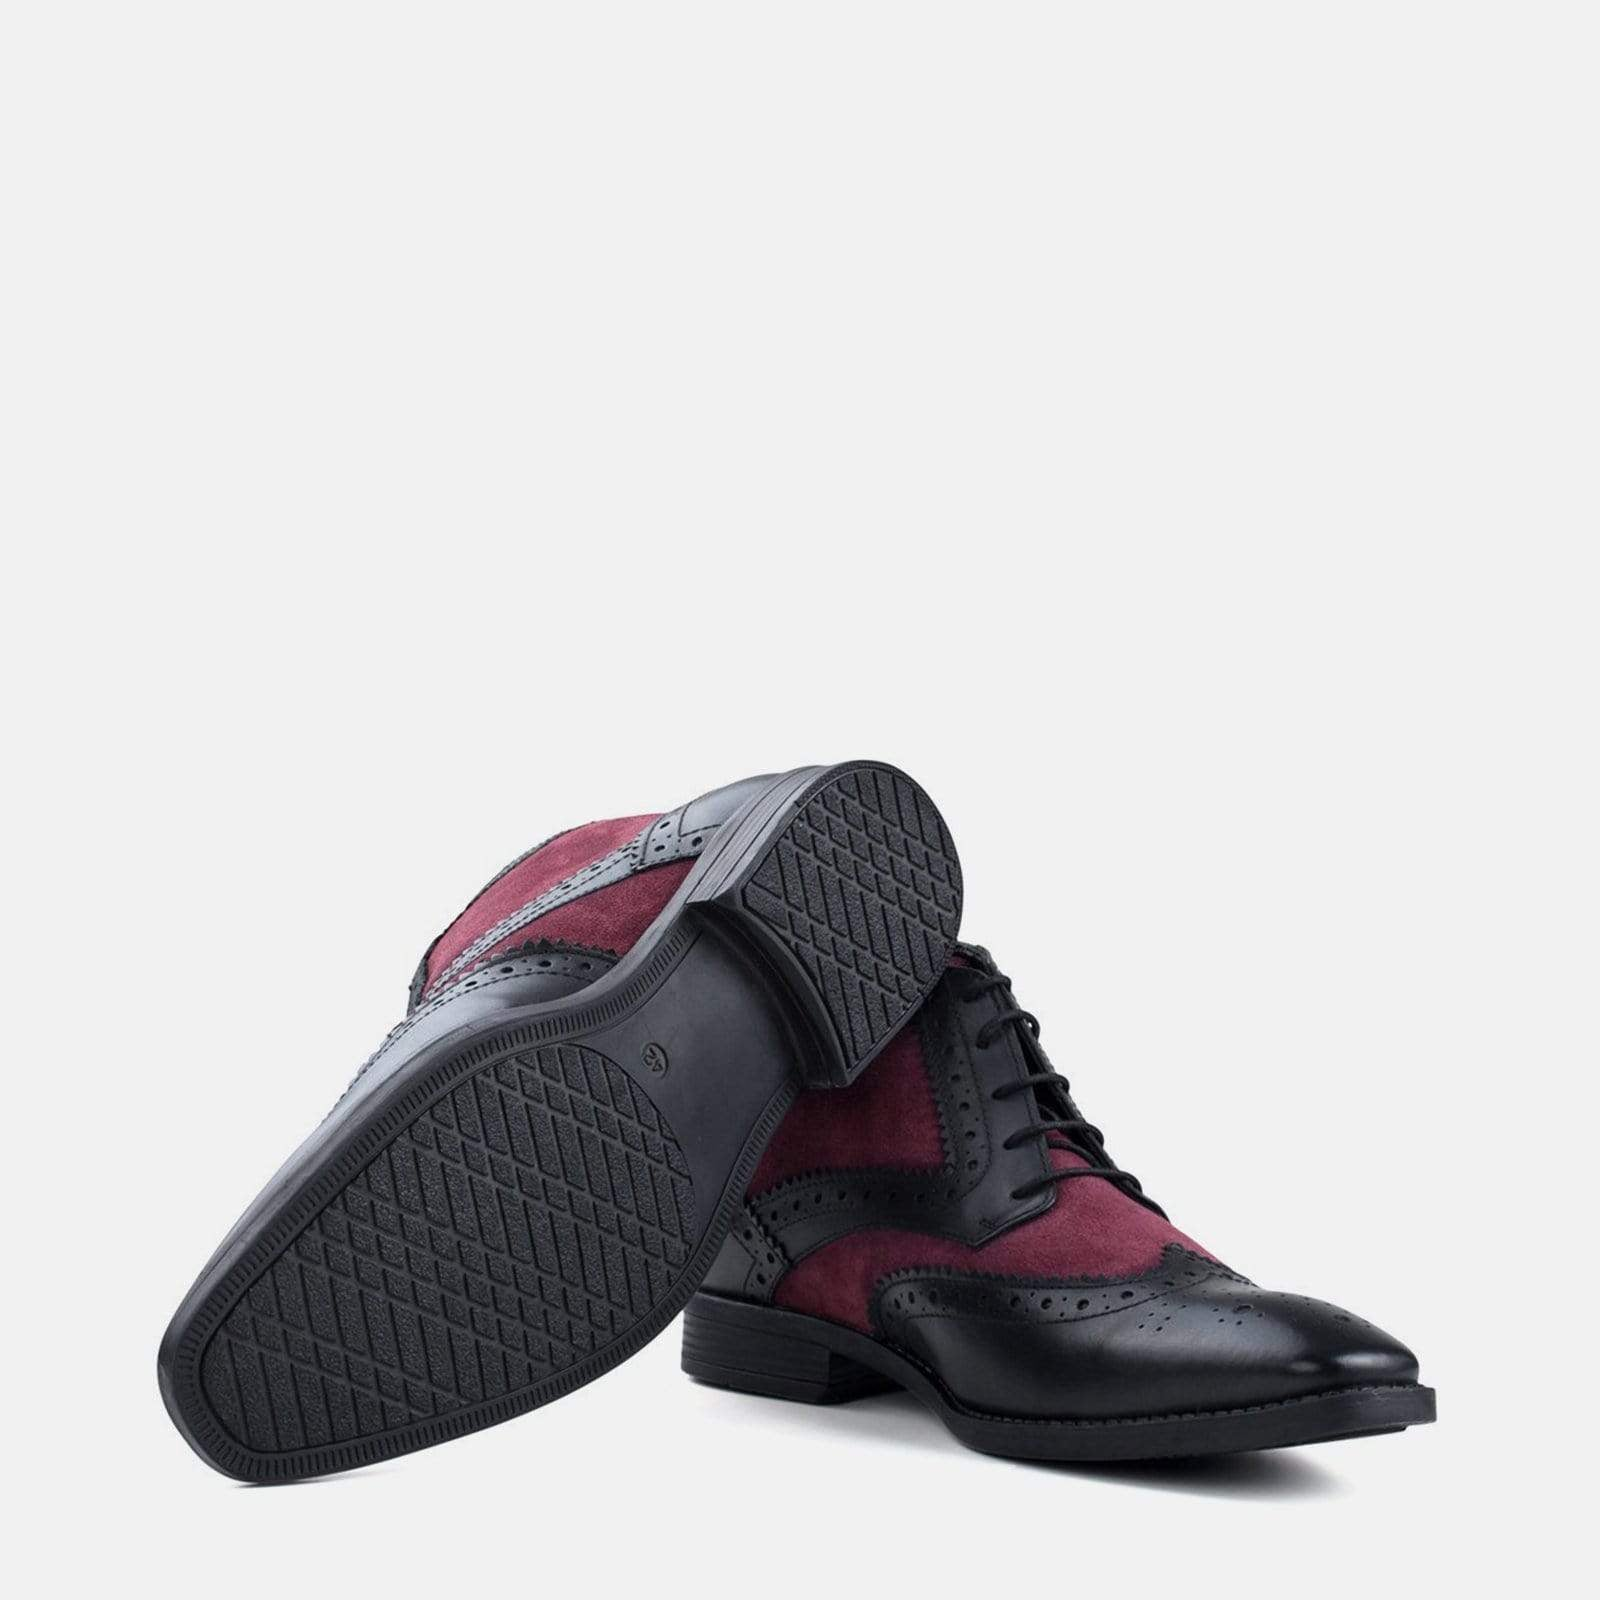 Redfoot Footwear ALFRED BLACK & BORDO